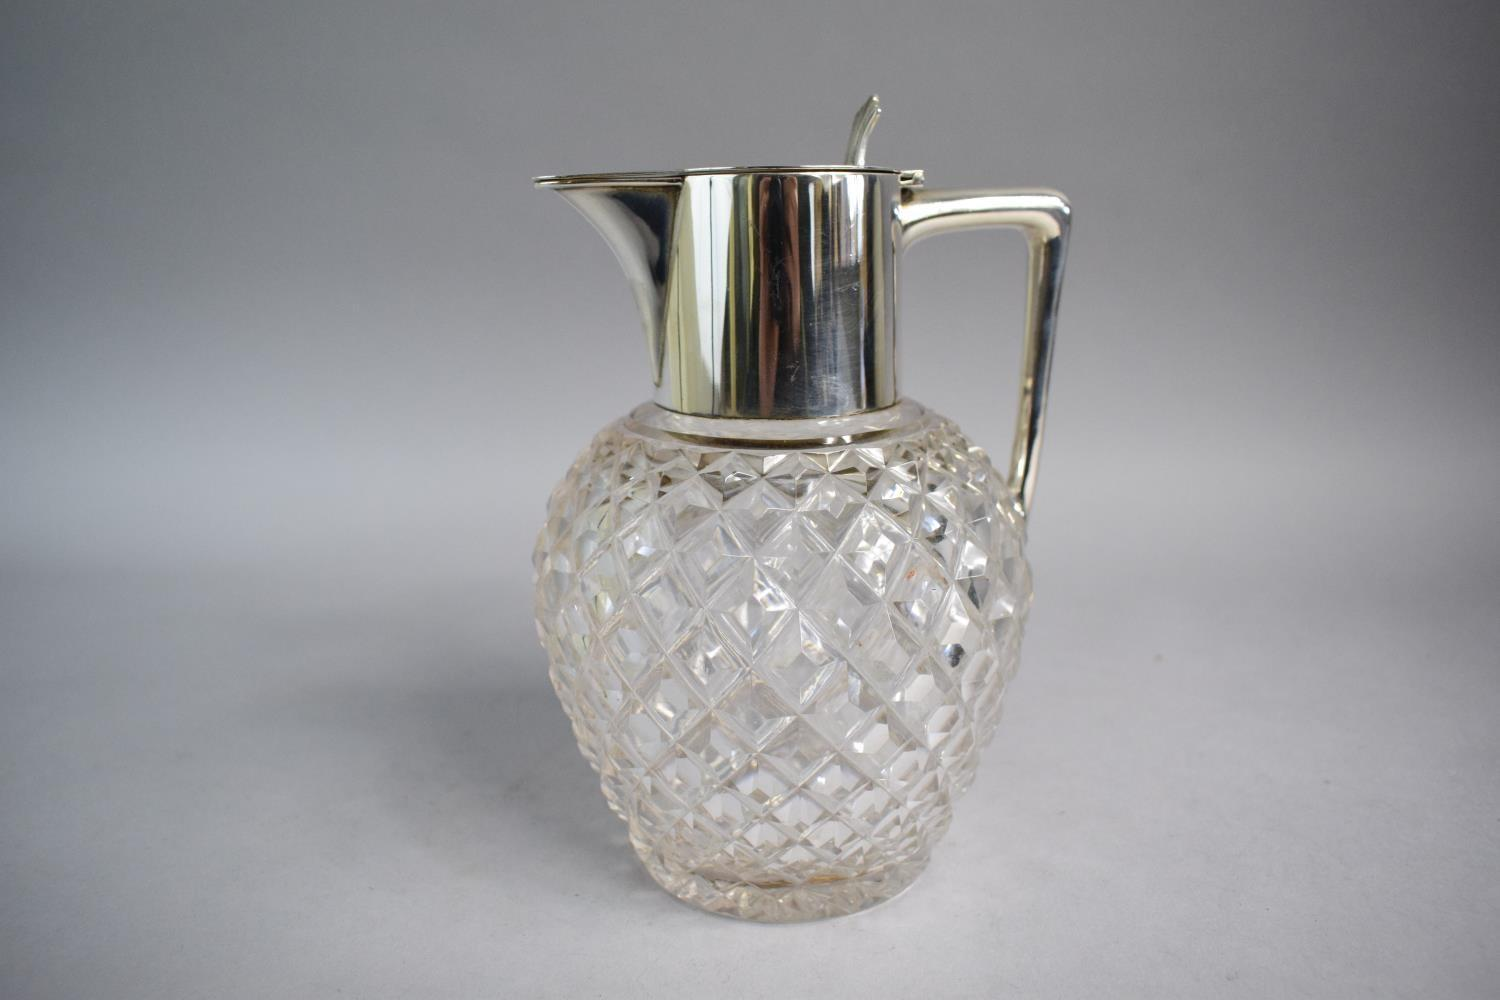 Lot 366 - A Cut Glass Water Jug with Silver Pourer and Hinged Lid. 19cms High. Birmingham Hallmark